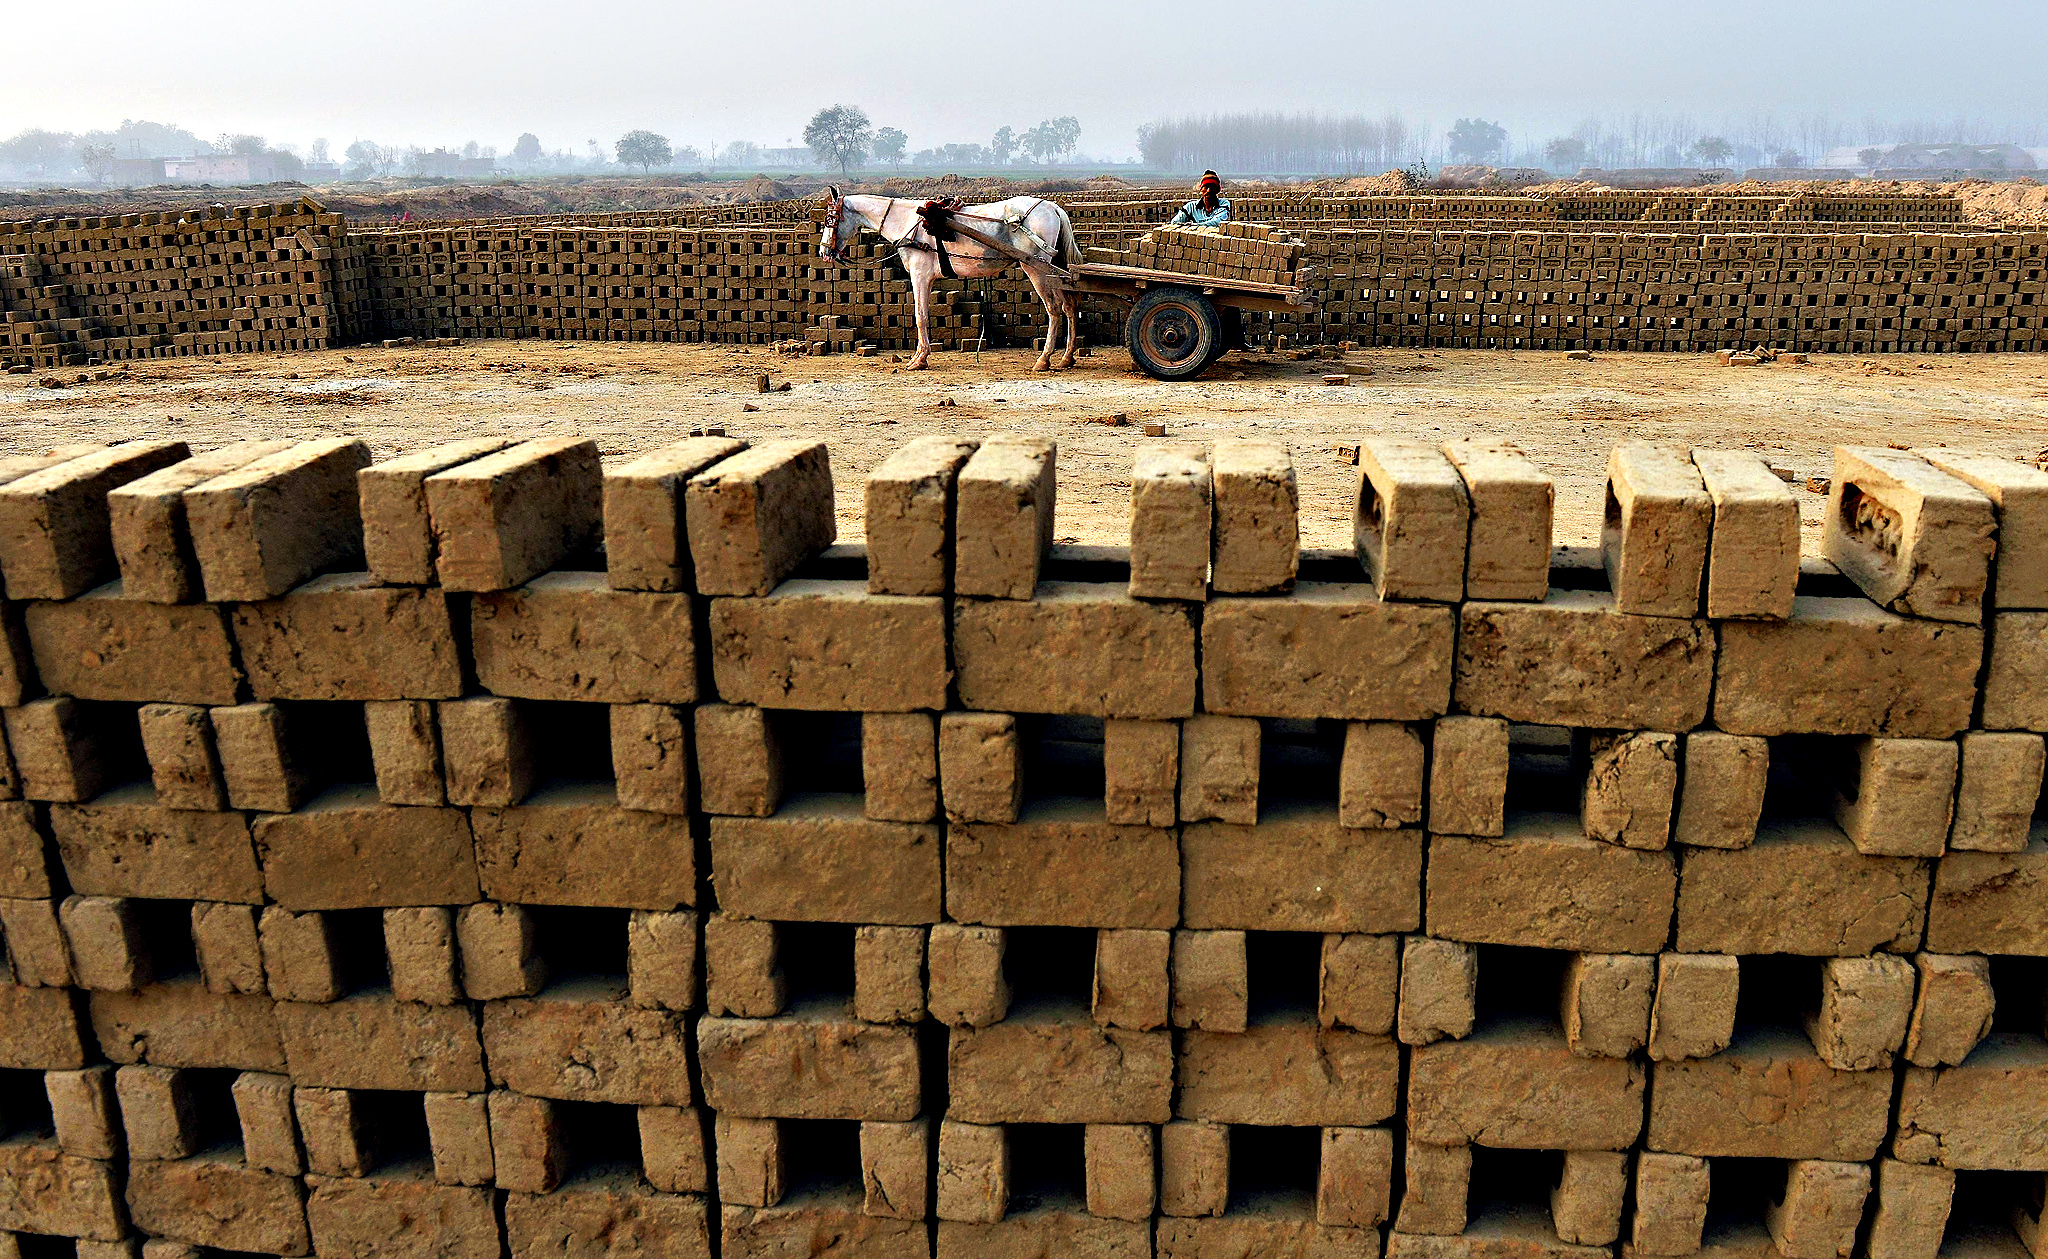 An Indian labourer loads unbaked clay bricks on a horse-drawn cart to deliver them to a brick kiln in Sahibabad on the outskirts of New Delhi on Friday